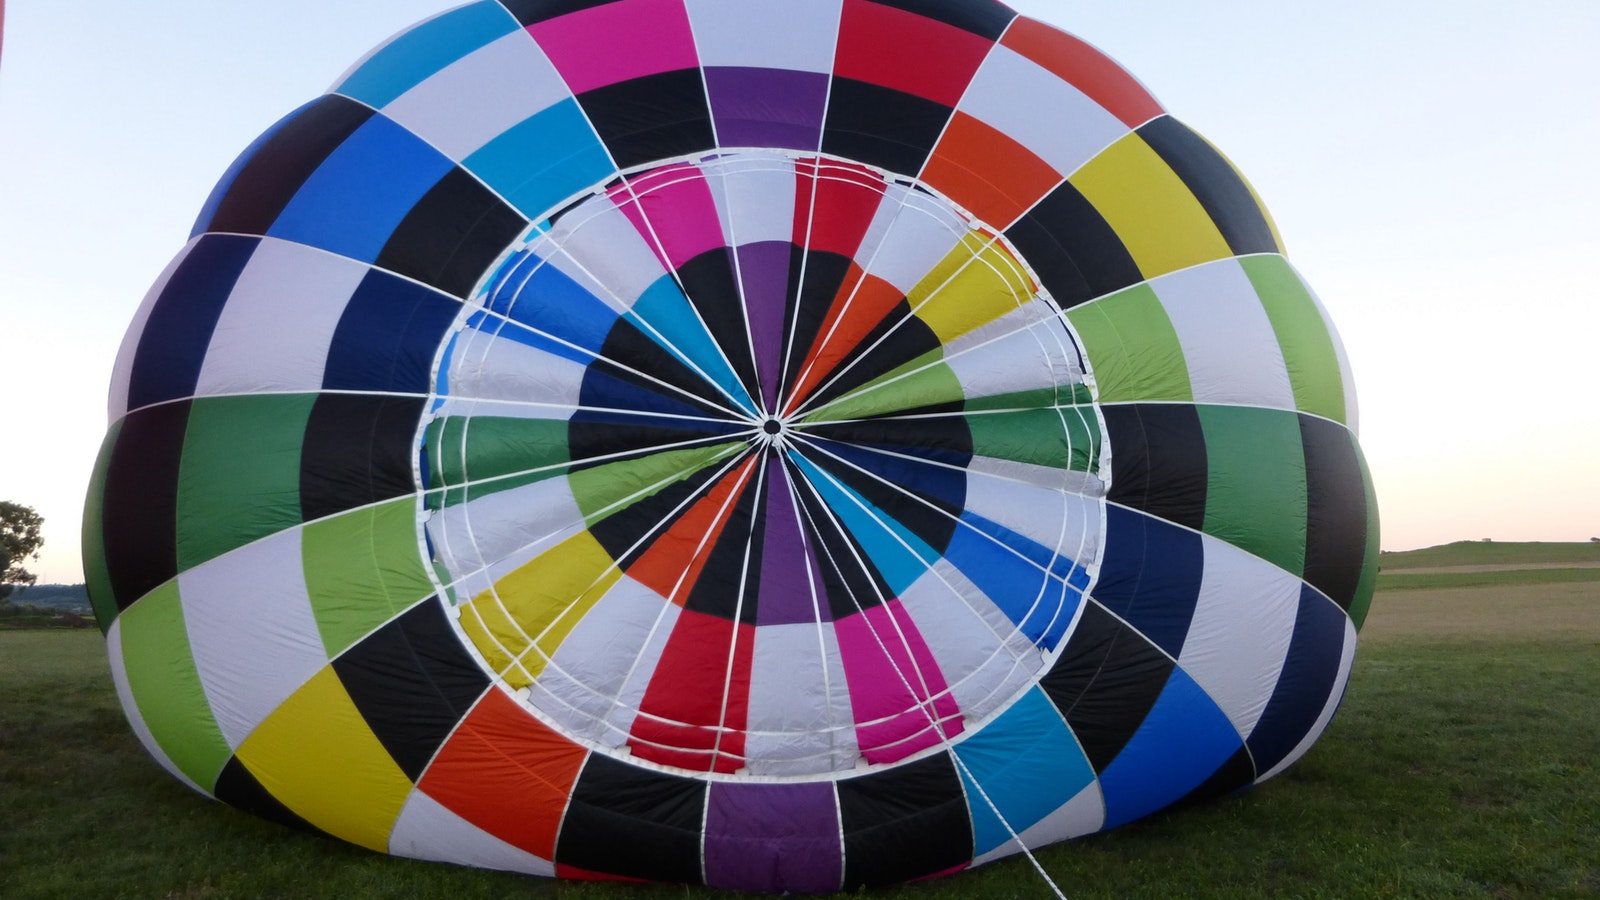 The top of a balloon on inflation